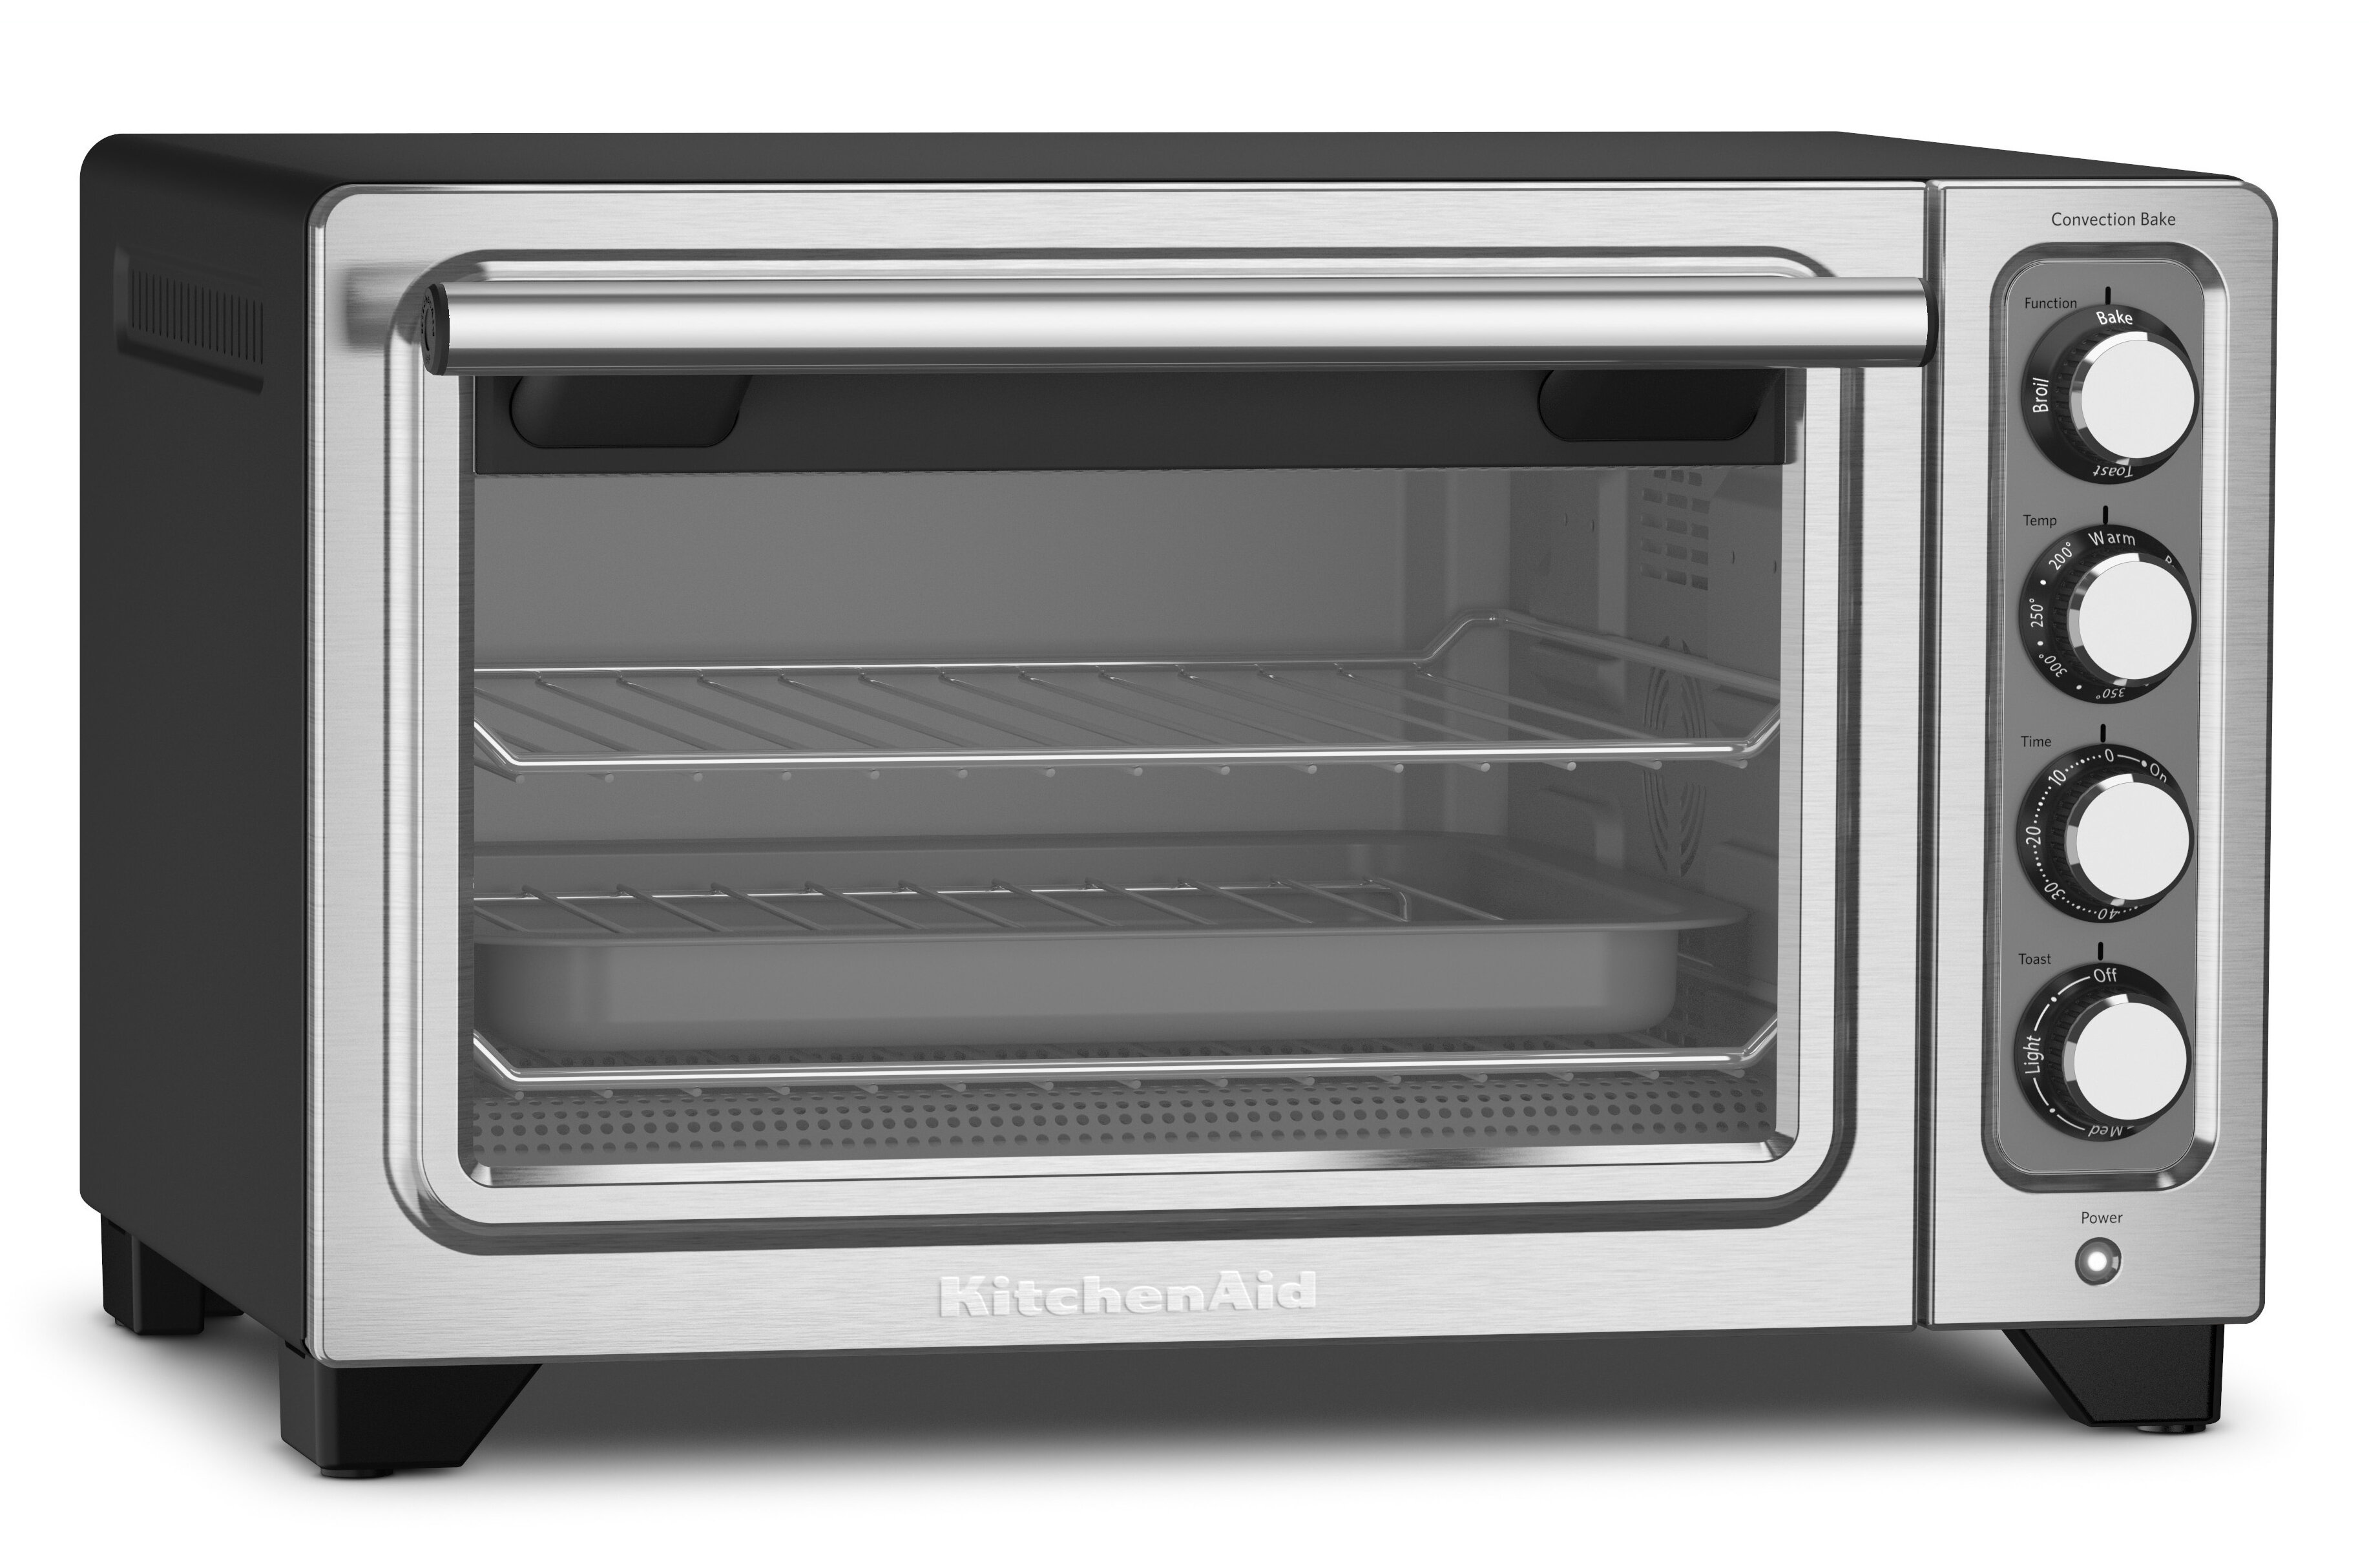 Kitchen Aid Toaster Oven | Compact Counter Toaster Oven